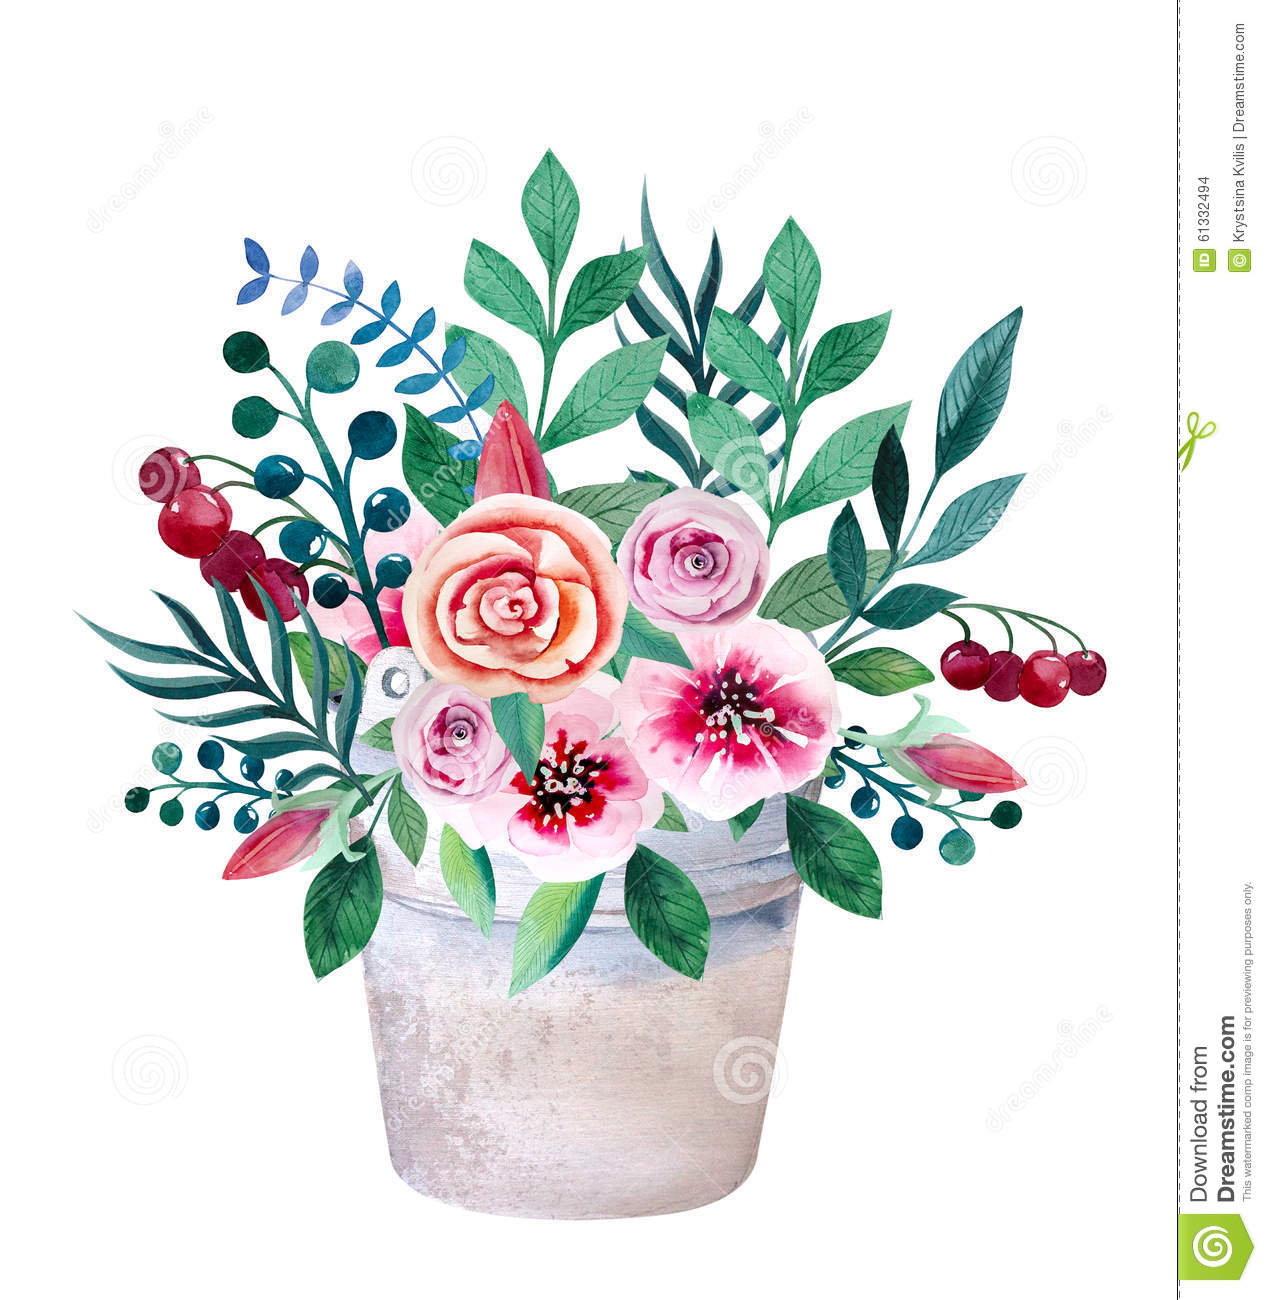 Watercolor Bouquets Of Flowers In Pot Rustic Stock Illustration